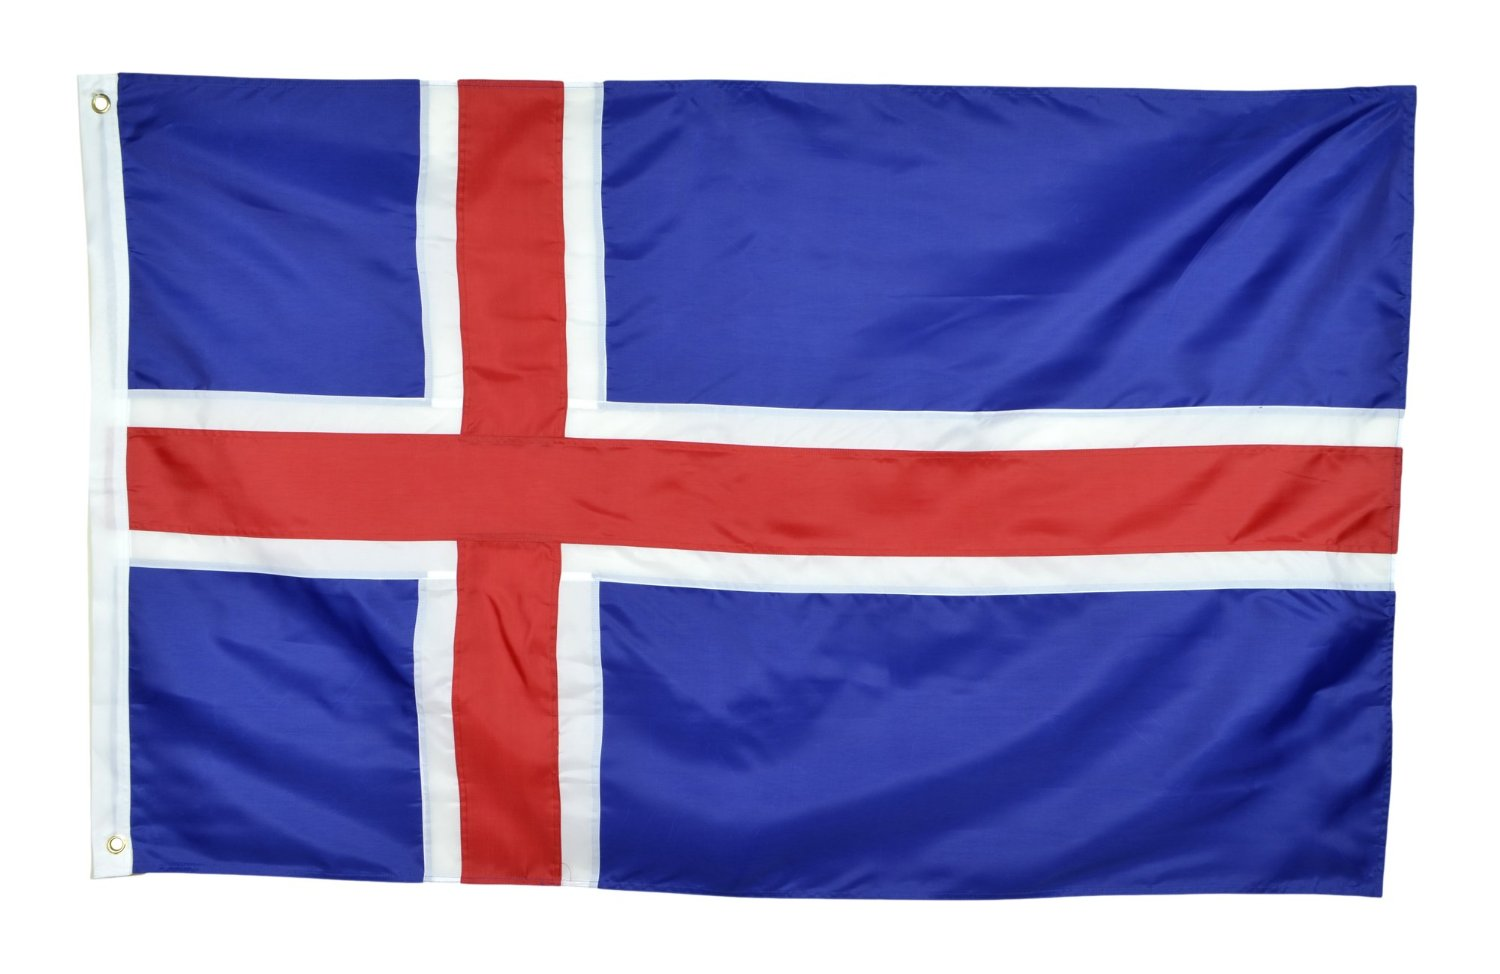 42e26f088801 Get Quotations · Shop72 - Iceland Flag Sewn Stripes Sturdy 201D Oxford  Nylon Country Flags - World Flag -